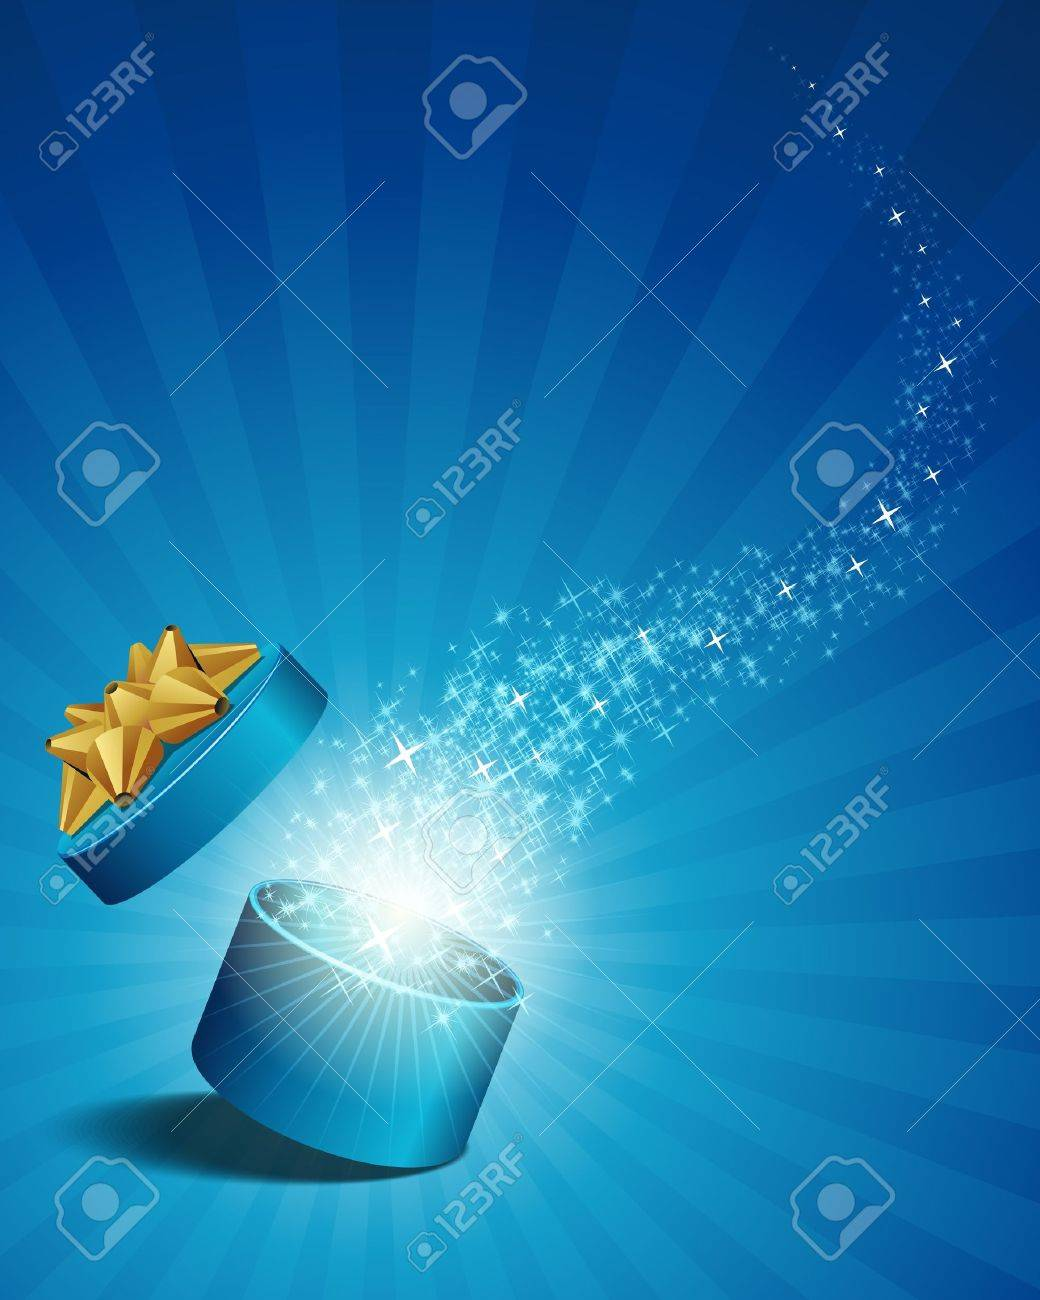 Open explore gift with fly stars vector background - 10553502